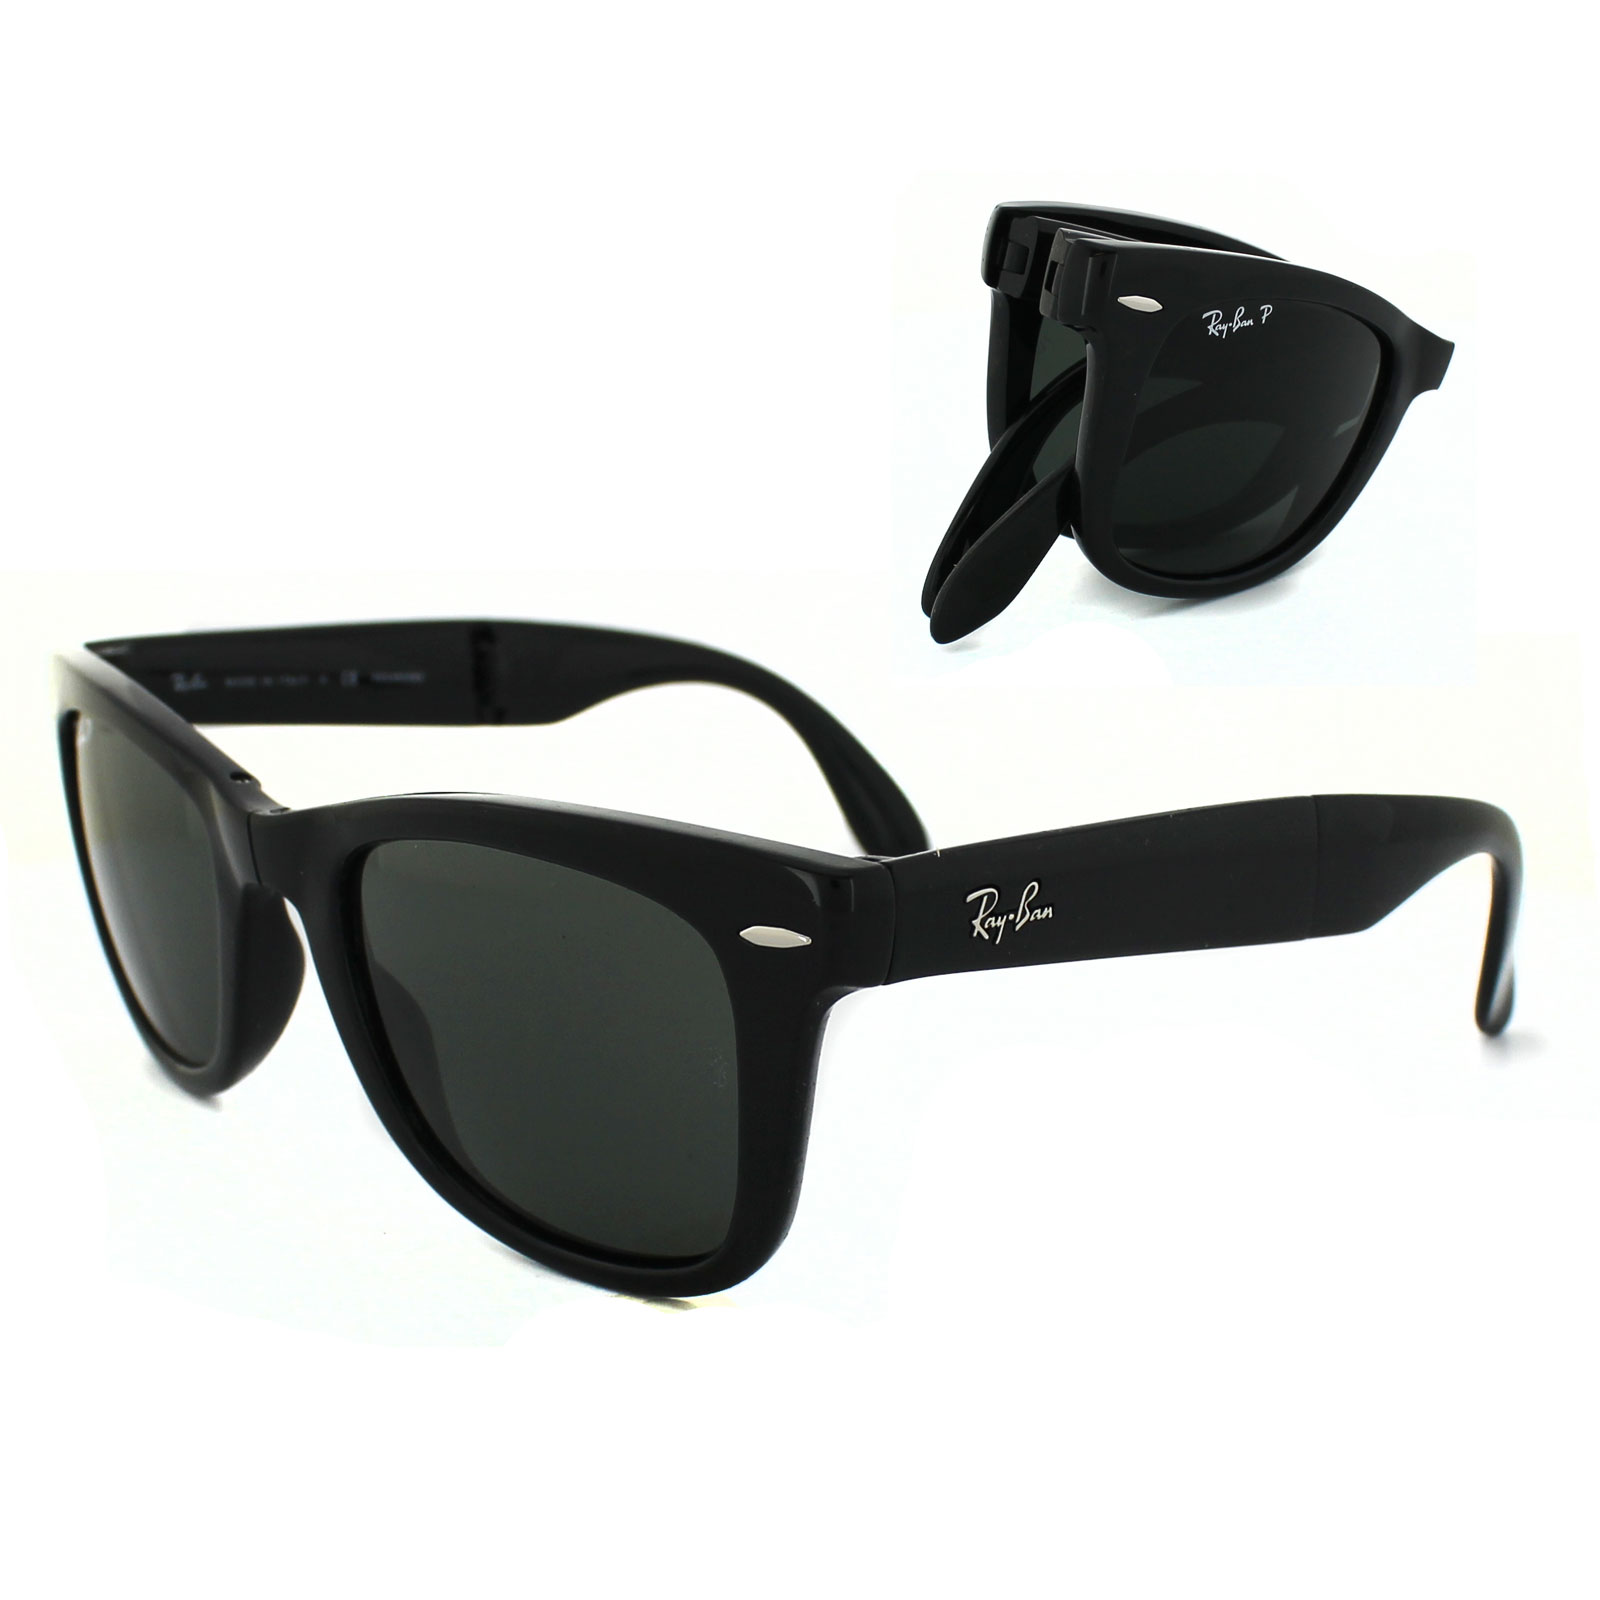 ray ban wayfarer prescription sunglasses uk